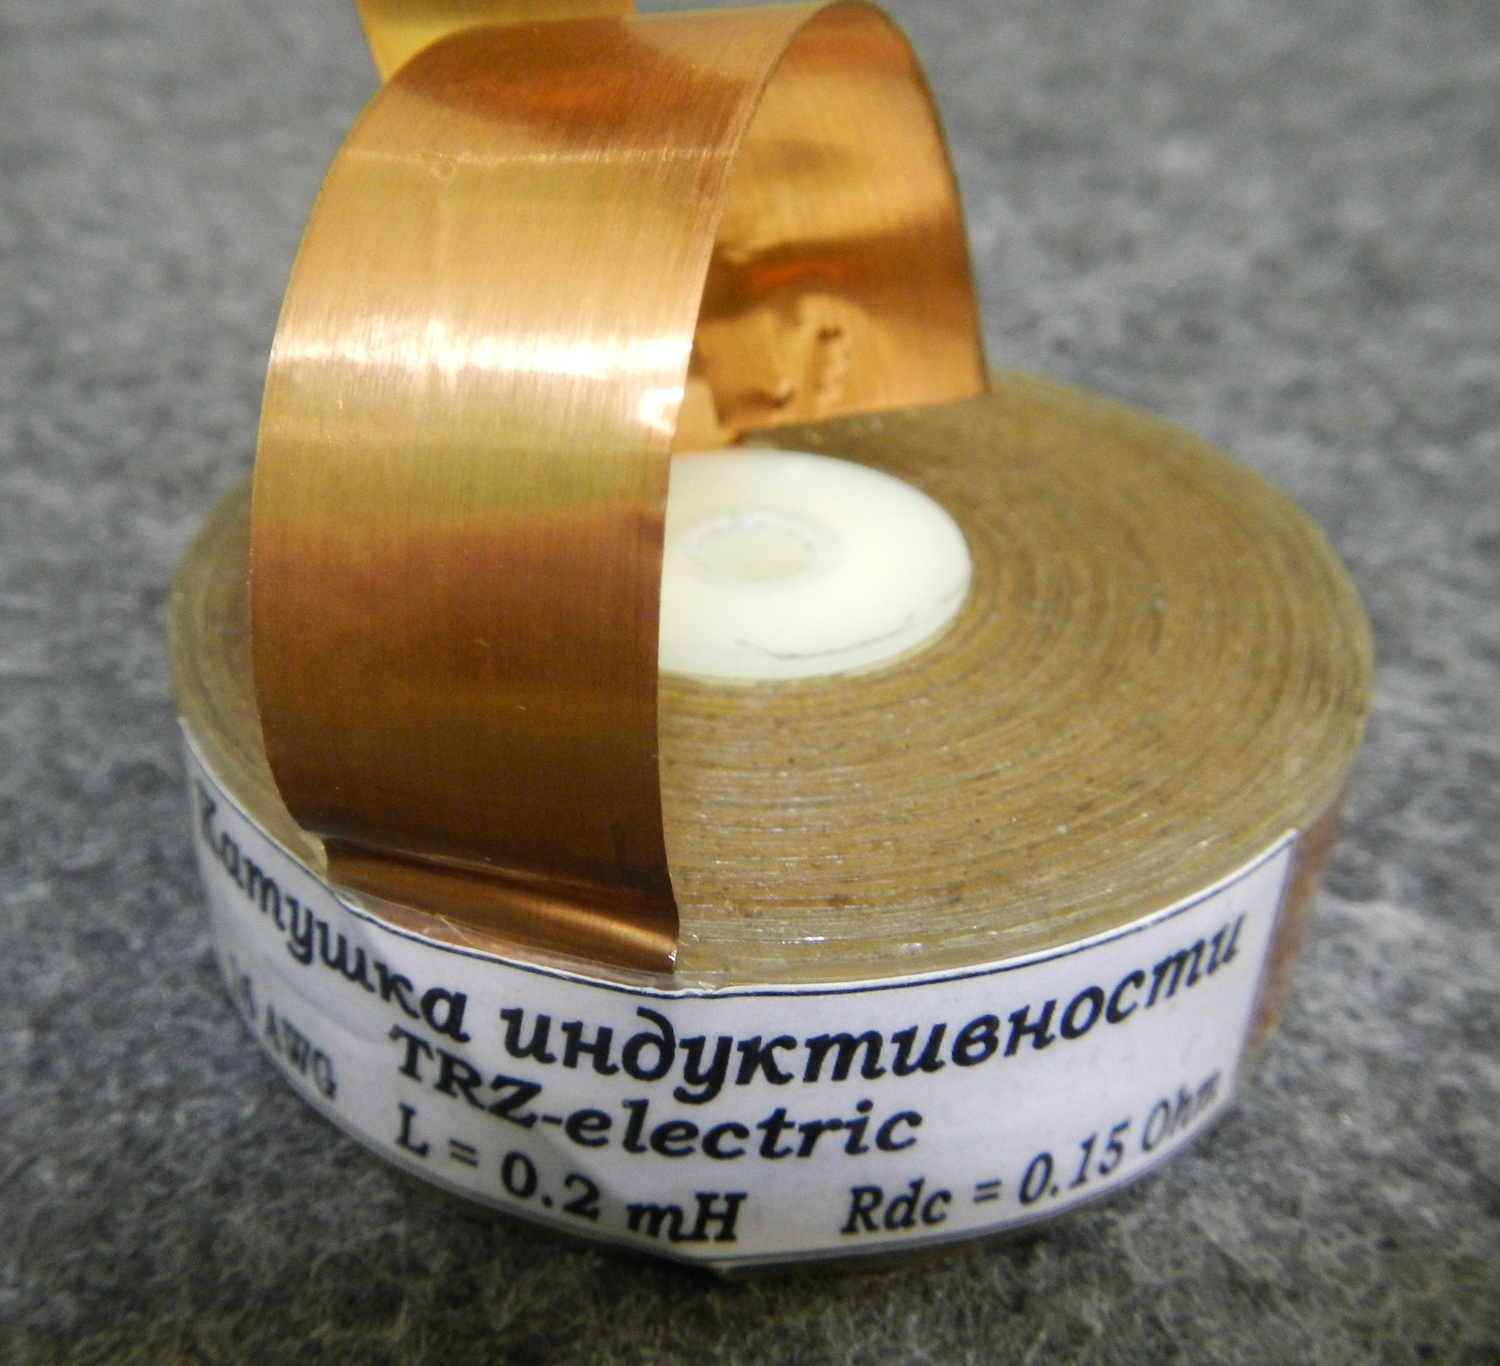 "<span style=""font-weight: bold; font-style: italic;"">Катушка индуктивности 16AWG 0.2mH Rdc 0.15 Ohm</span>"